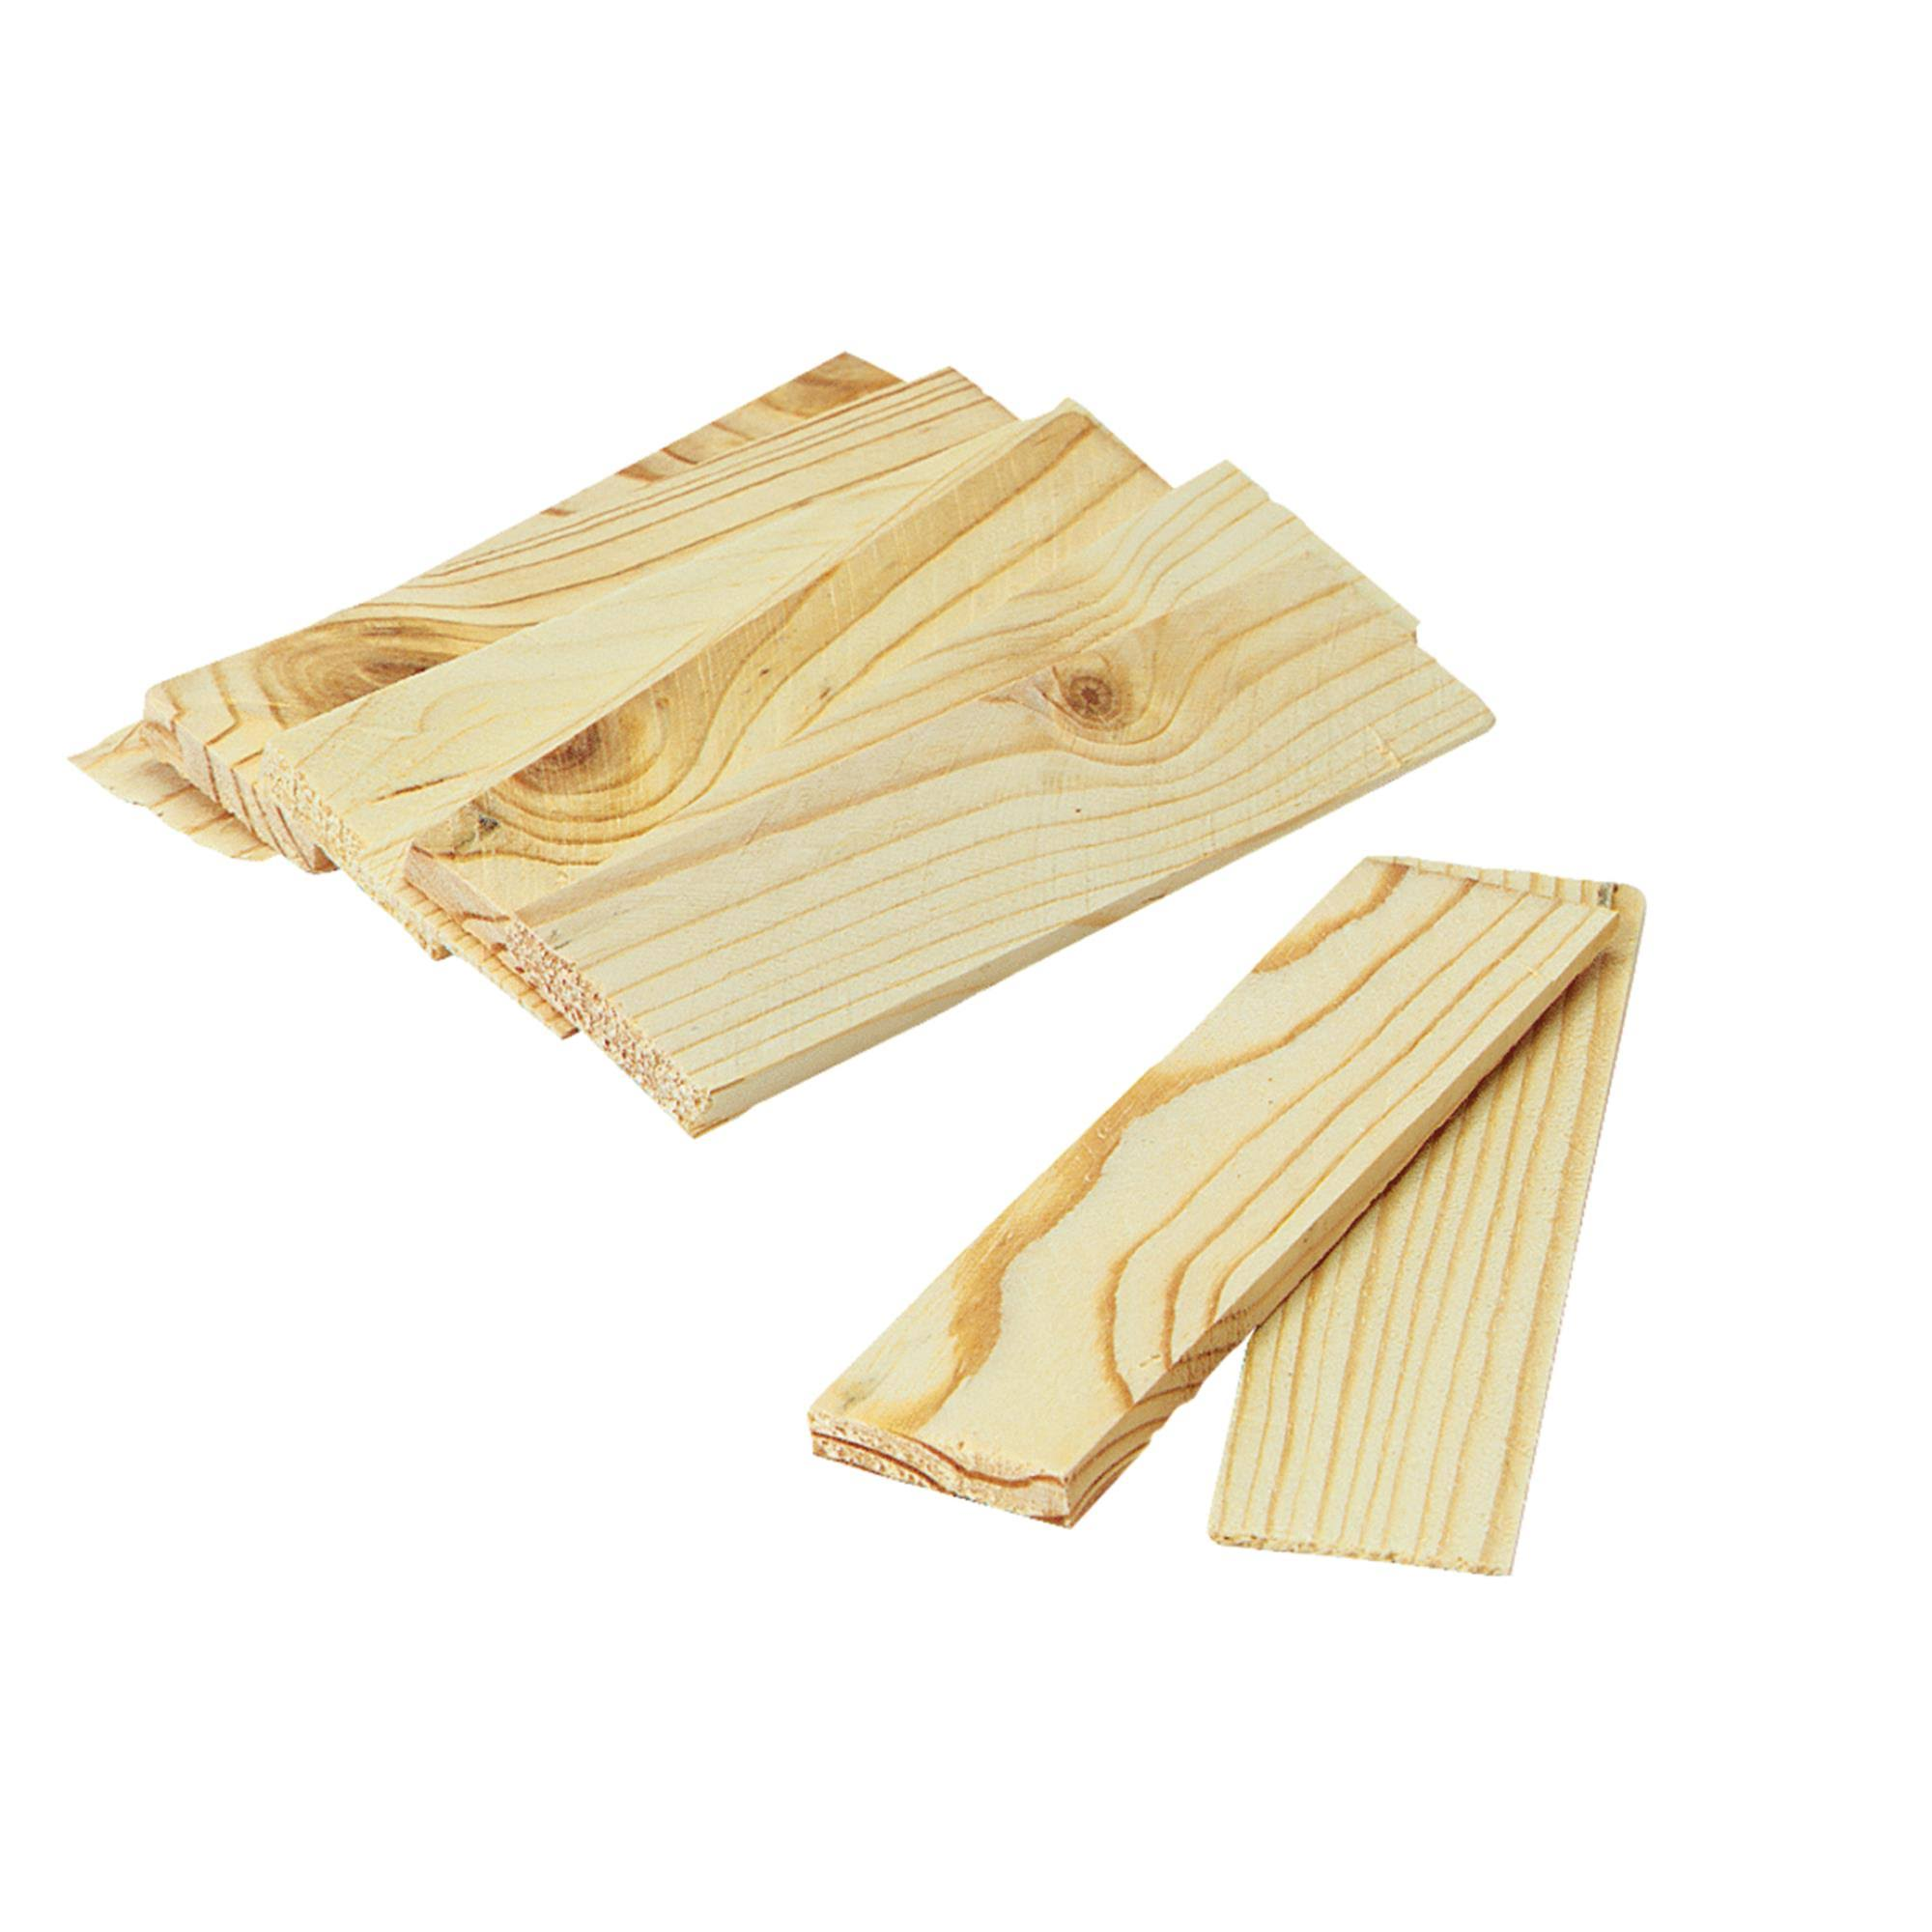 Nelson Strip Wood Shims - 15cm